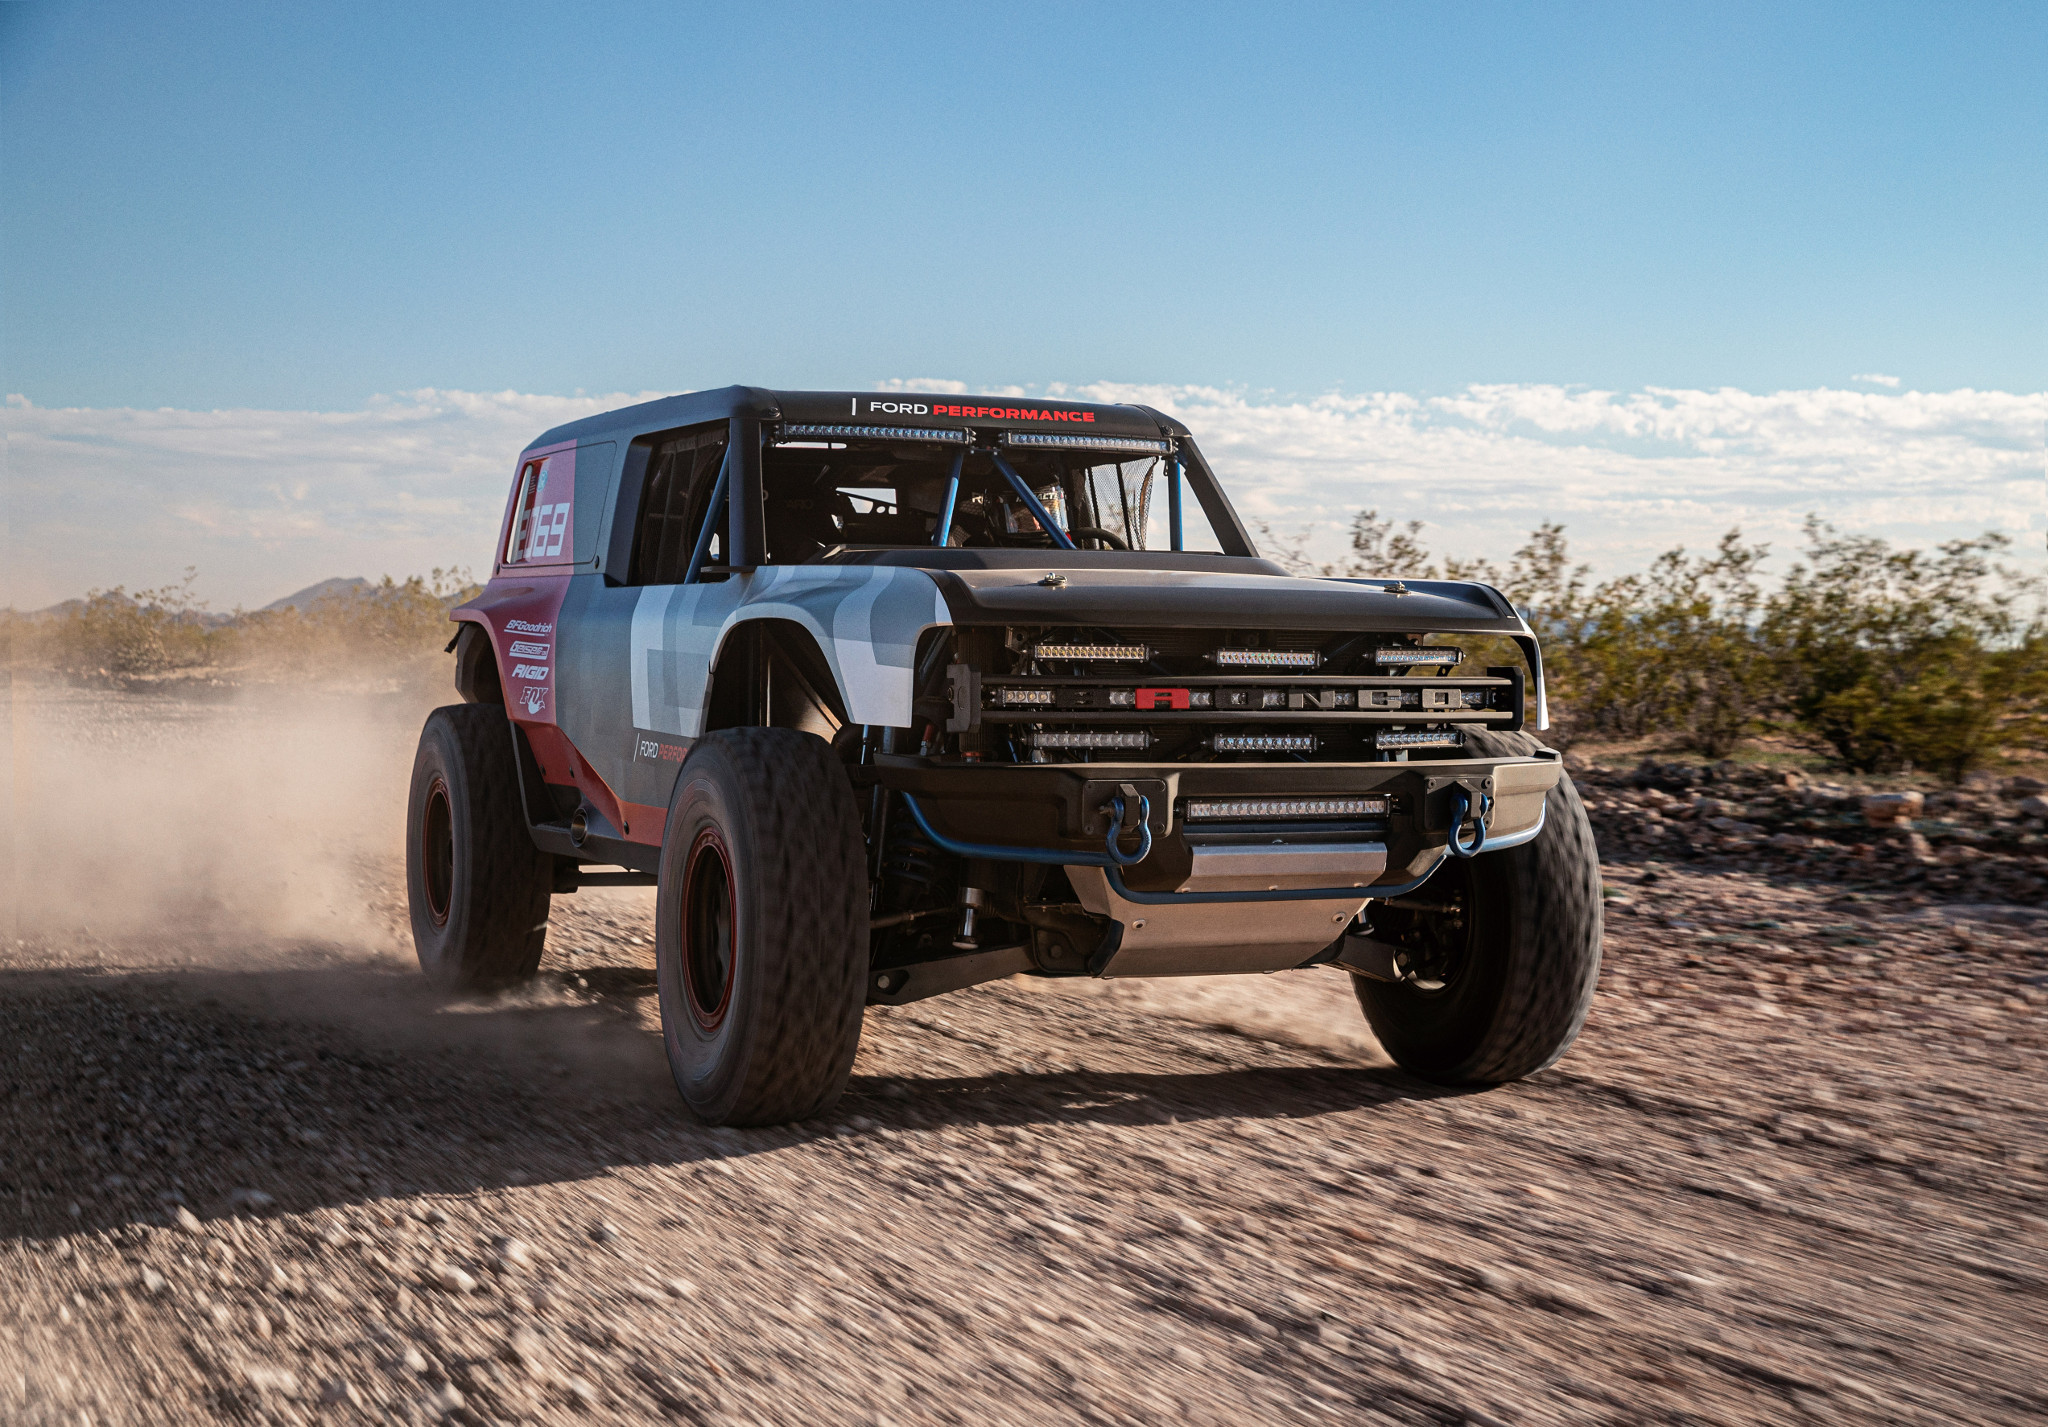 2020 Ford Bronco: 3 Things the Off-Road Race Prototype Tells Us About the SUV-to-Be